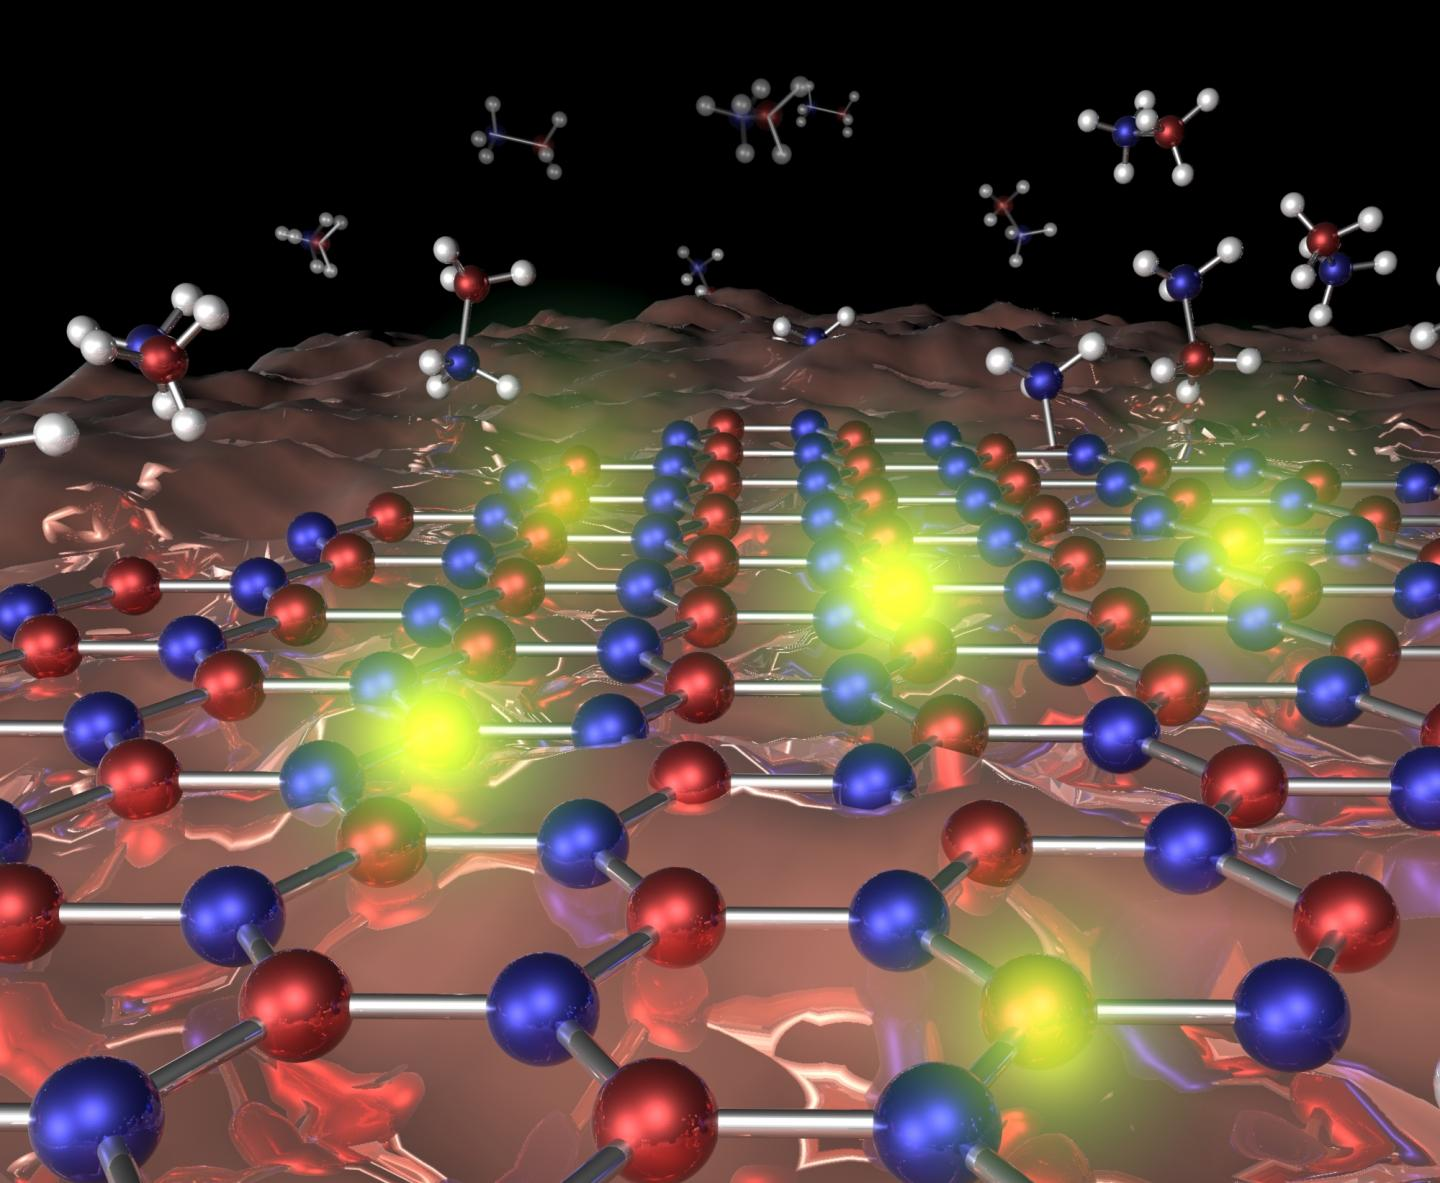 Properties of Quantum Light Sources Observed